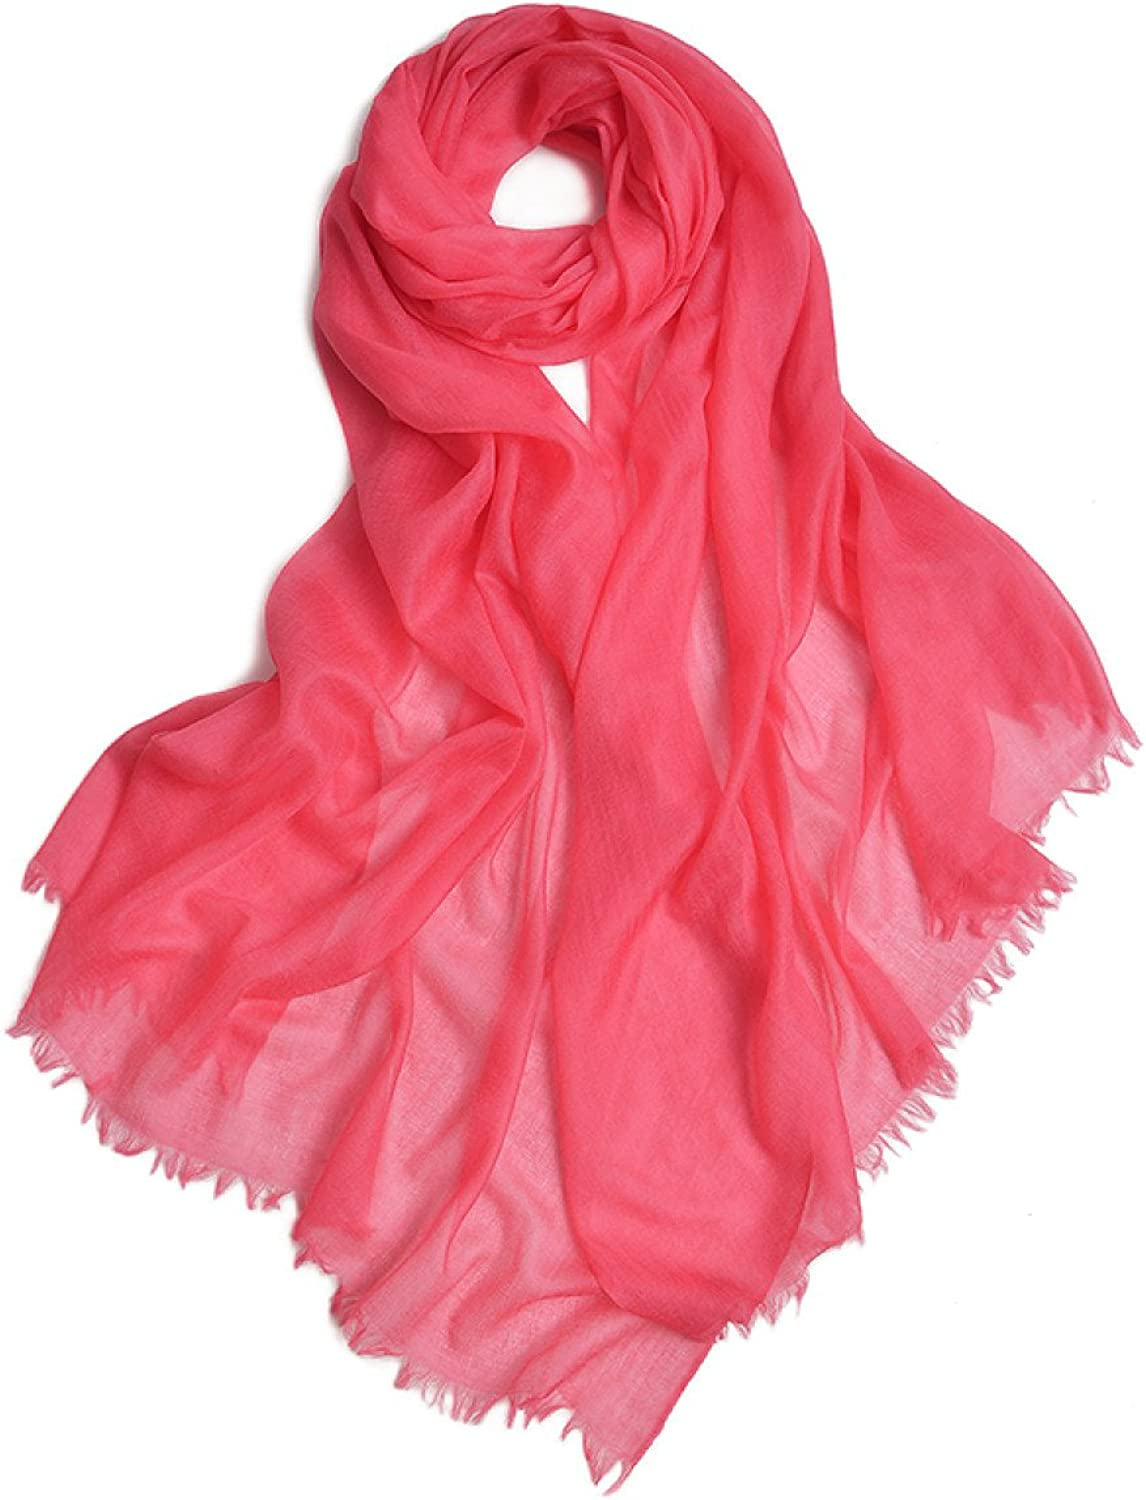 New Scarf Air Conditioning Room Shawl Dual Female Winter,1OneSize